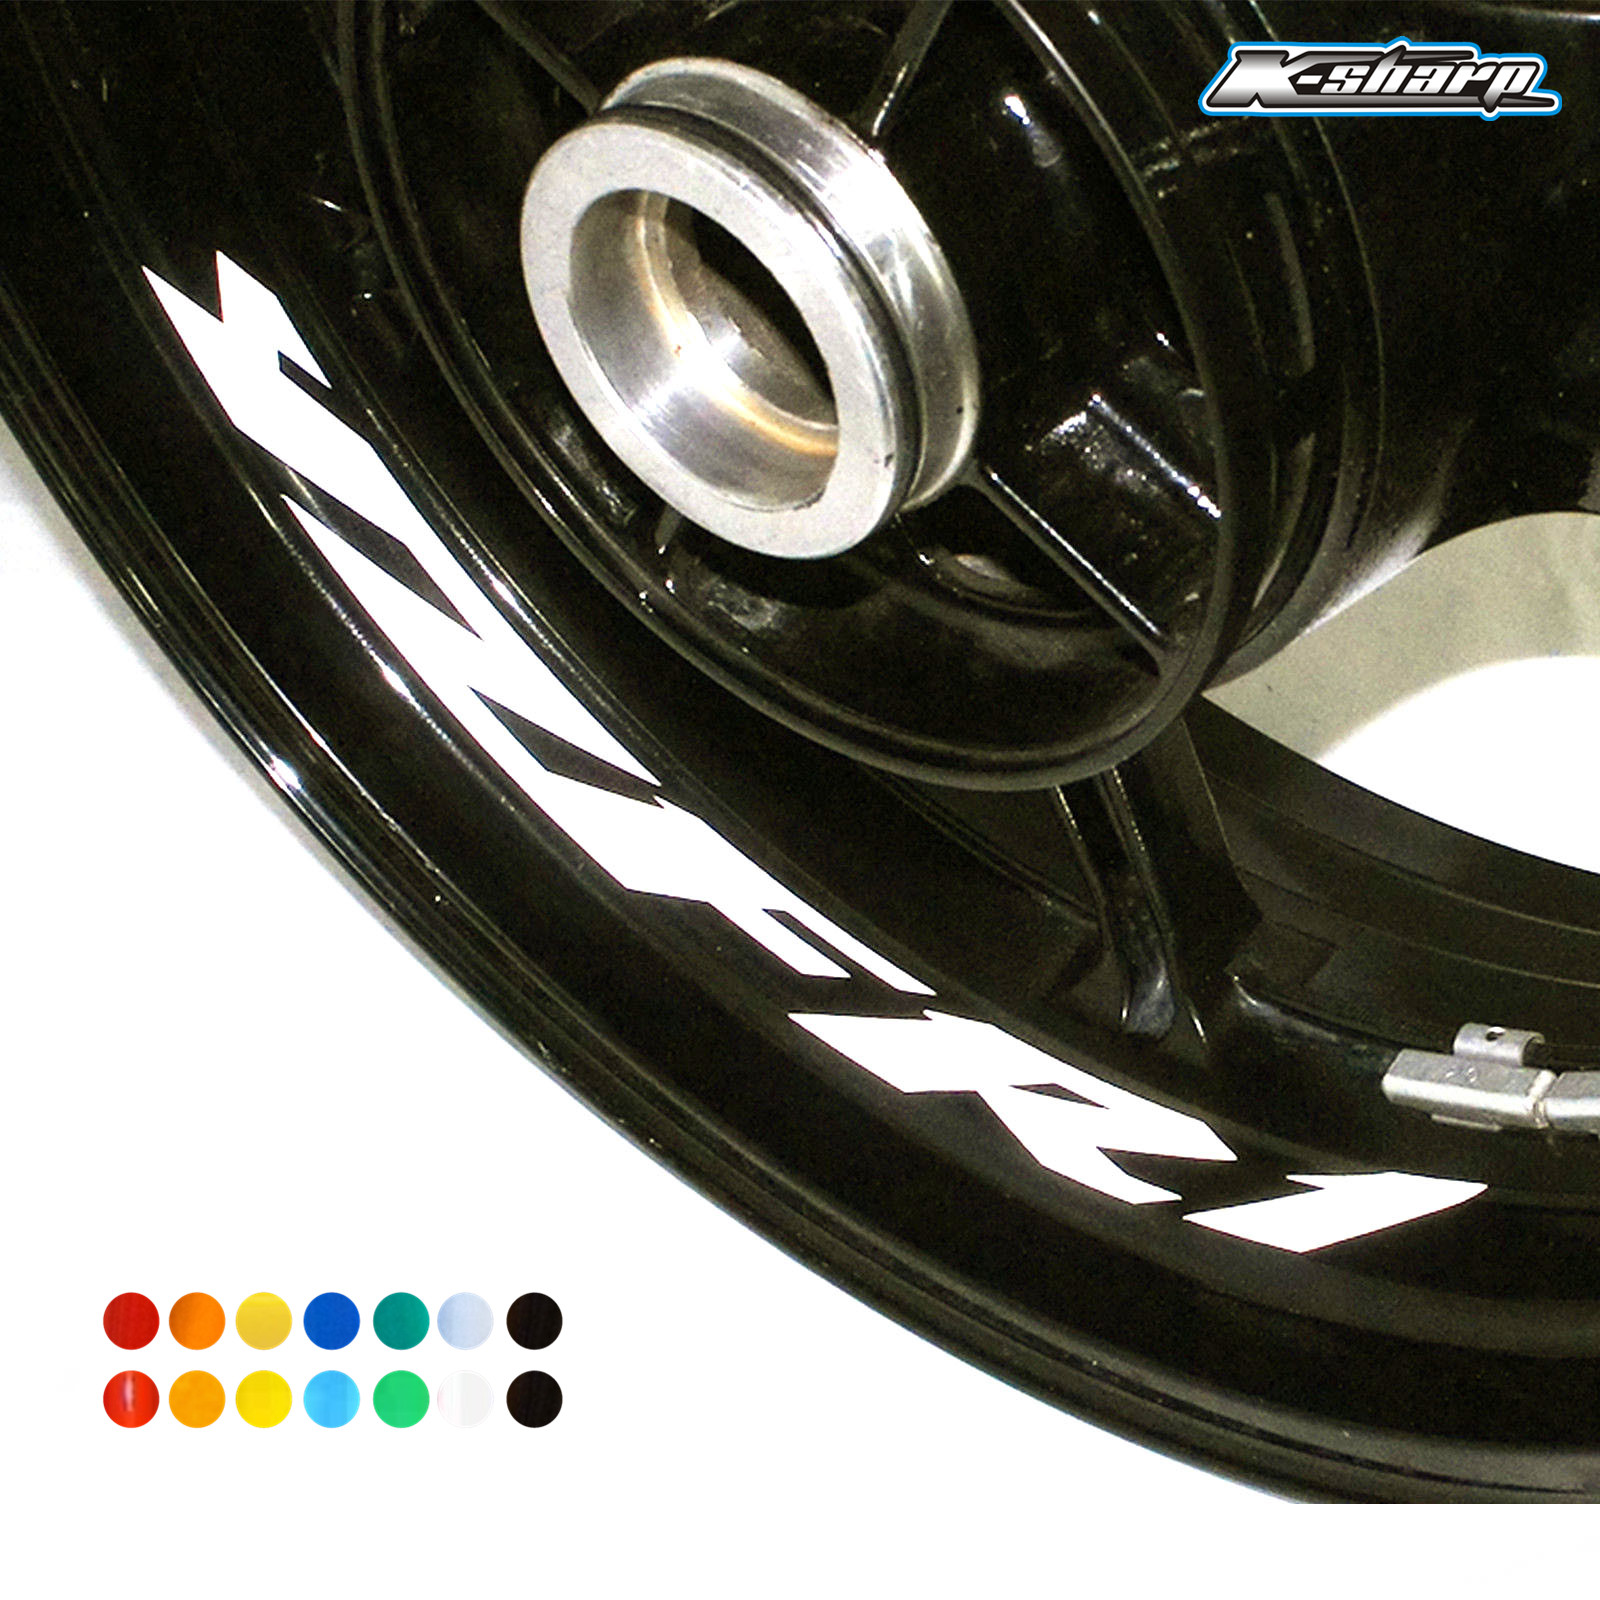 8 X Custon Inner Rim Decals Wheel Reflective Sign Stickers Stripes FIT YAMAHA YZF R1